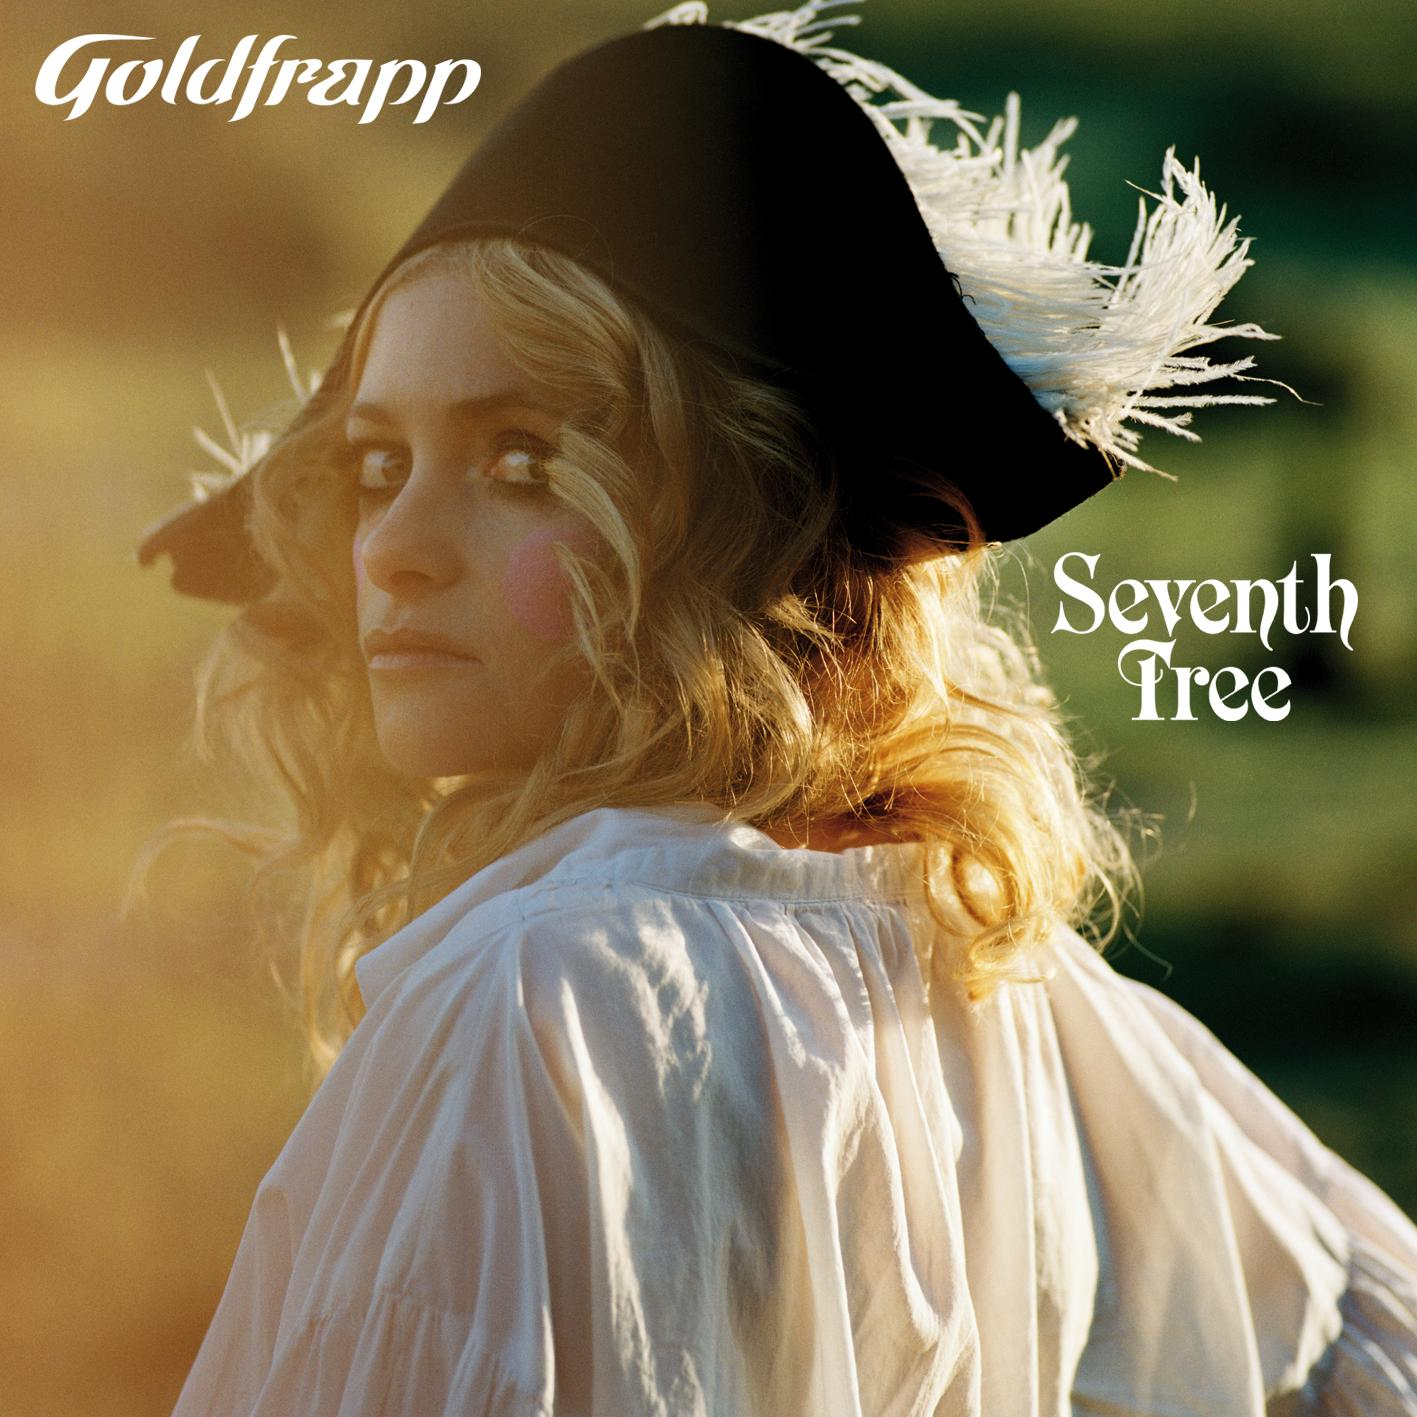 jaquettes3/Goldfrapp_Seventh-Tree.jpg